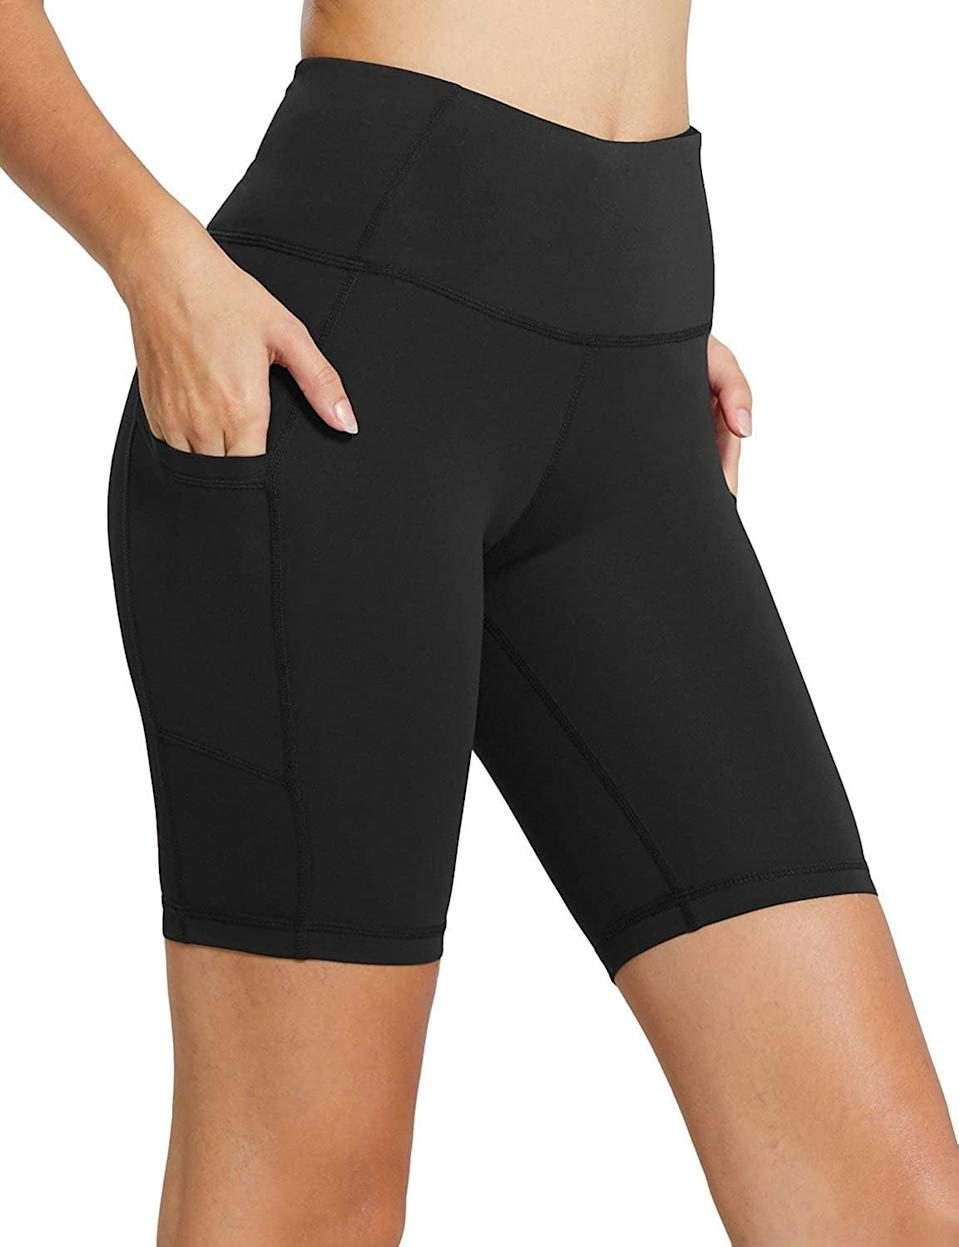 <p>Store your phone and headphones in these <span>Baleaf High Waist Workout Shorts</span> ($20, originally $22).</p>